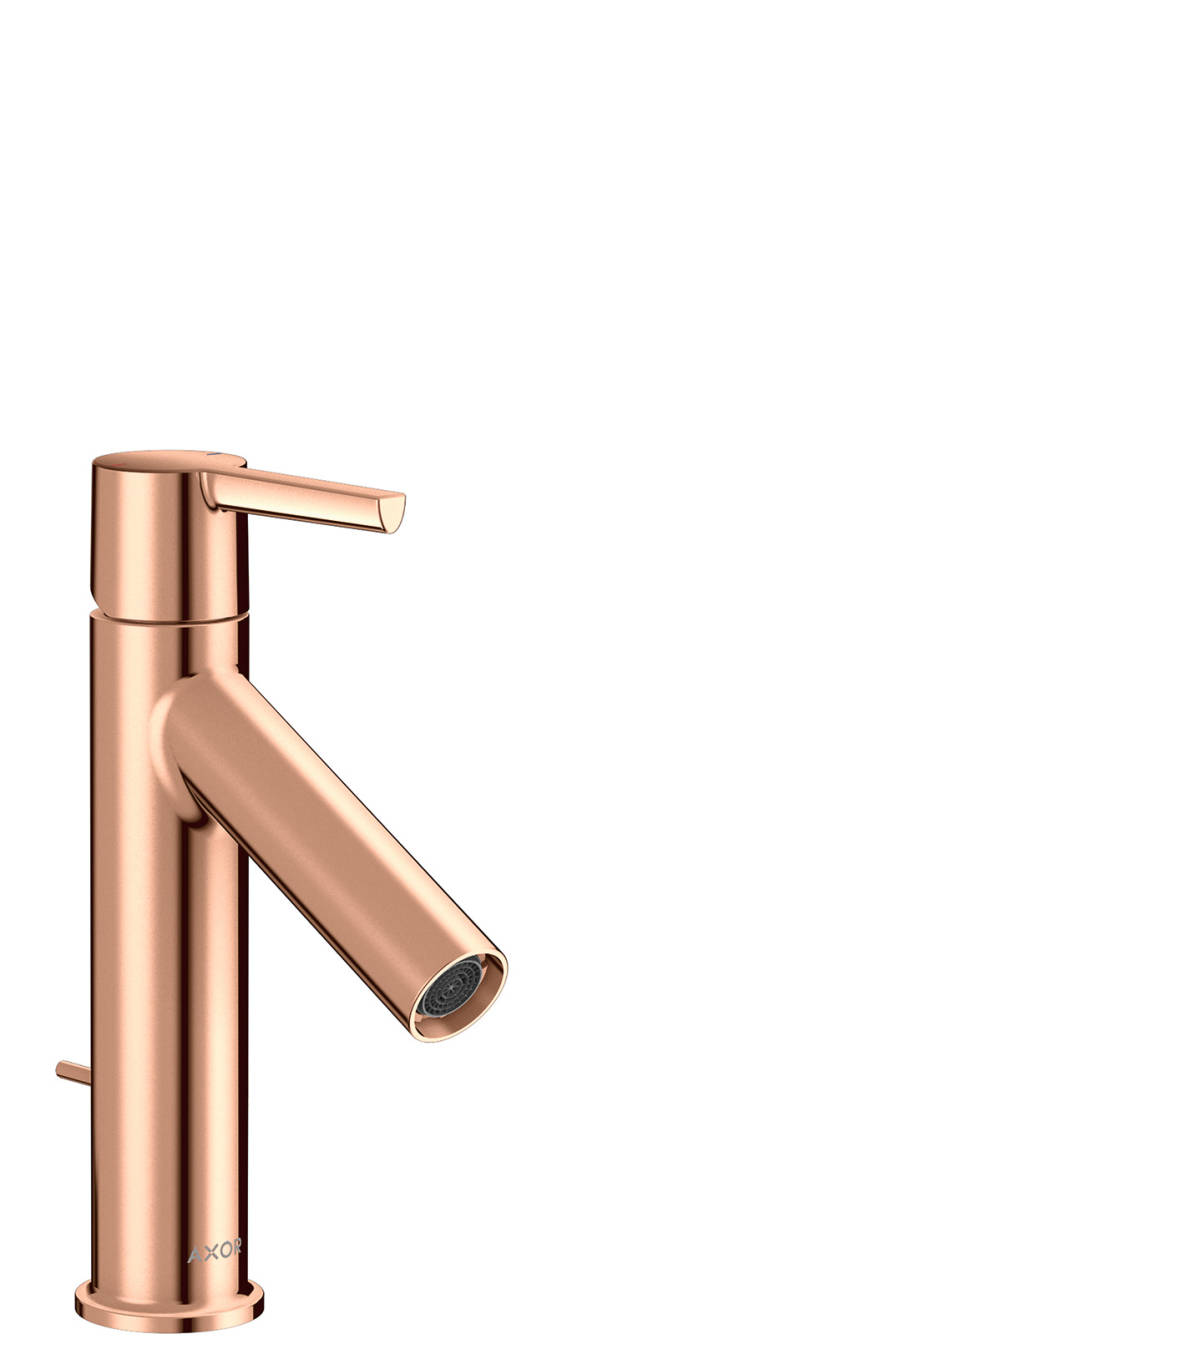 Single lever basin mixer 100 with lever handle and pop-up waste set, Polished Red Gold, 10001300